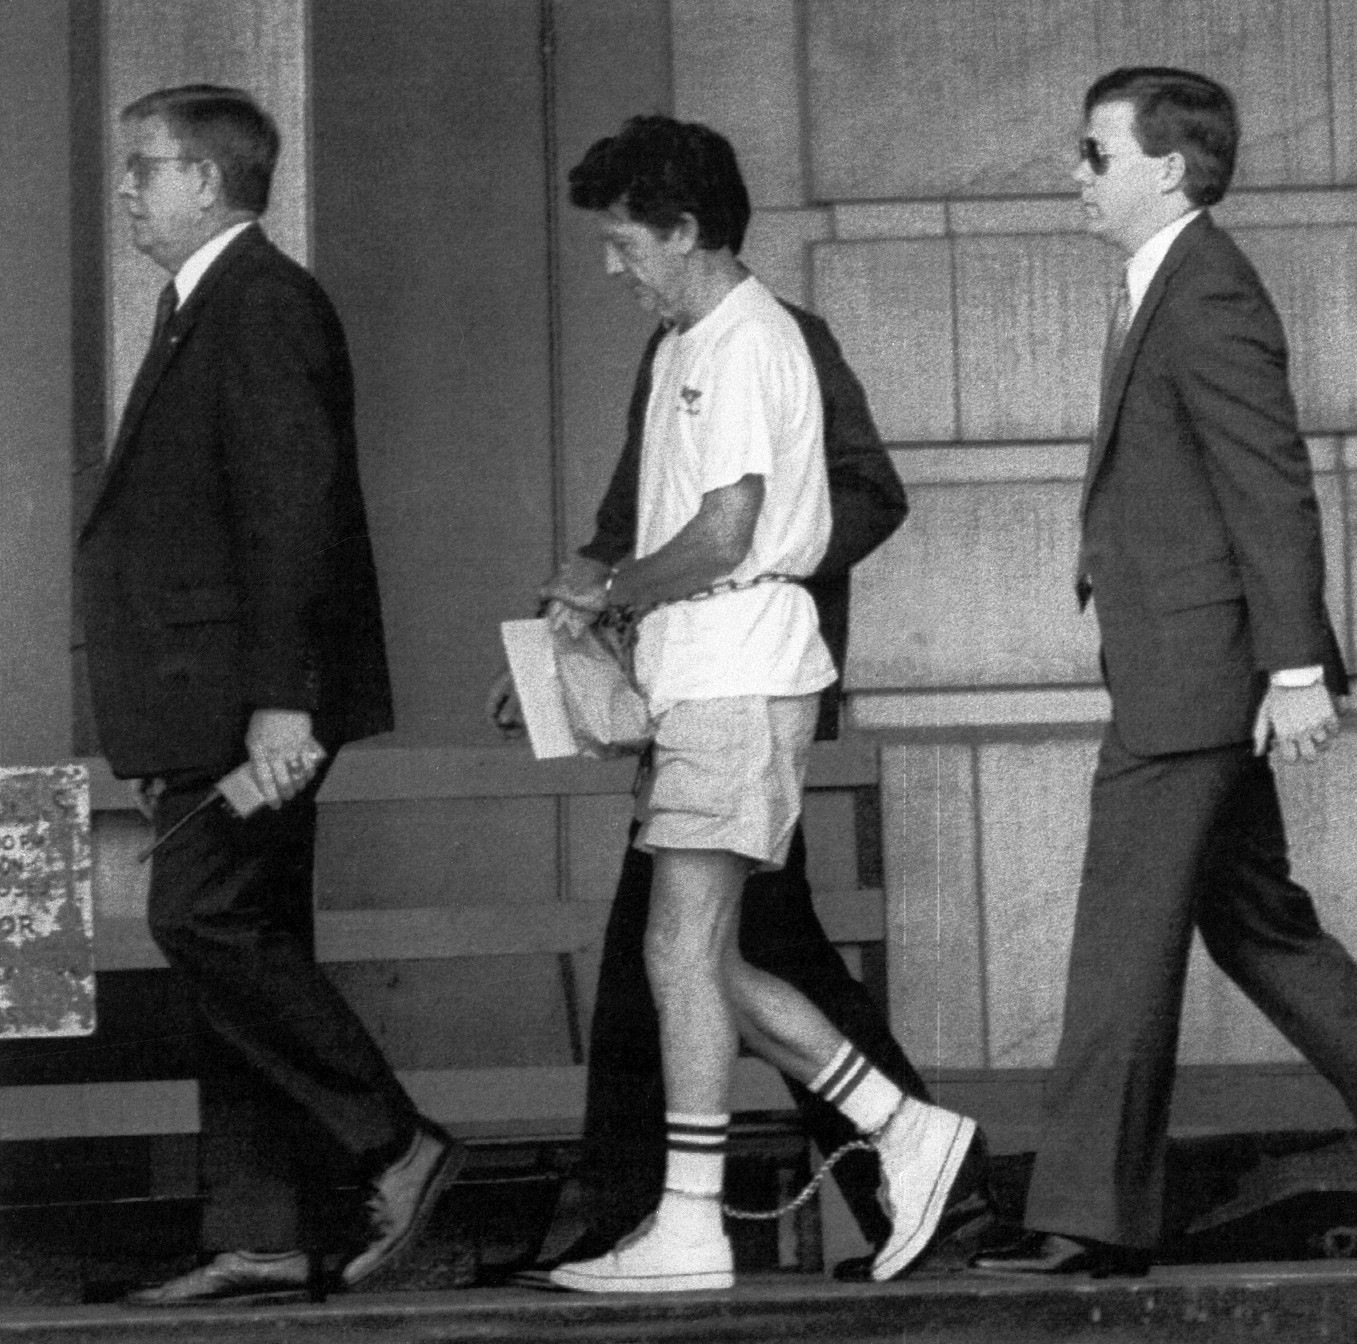 Walter Moody (center) is led into a federal courthouse in Macon, Georgia, during a hearing in 1990. Moody was convicted of killing Judge Robert Vance.